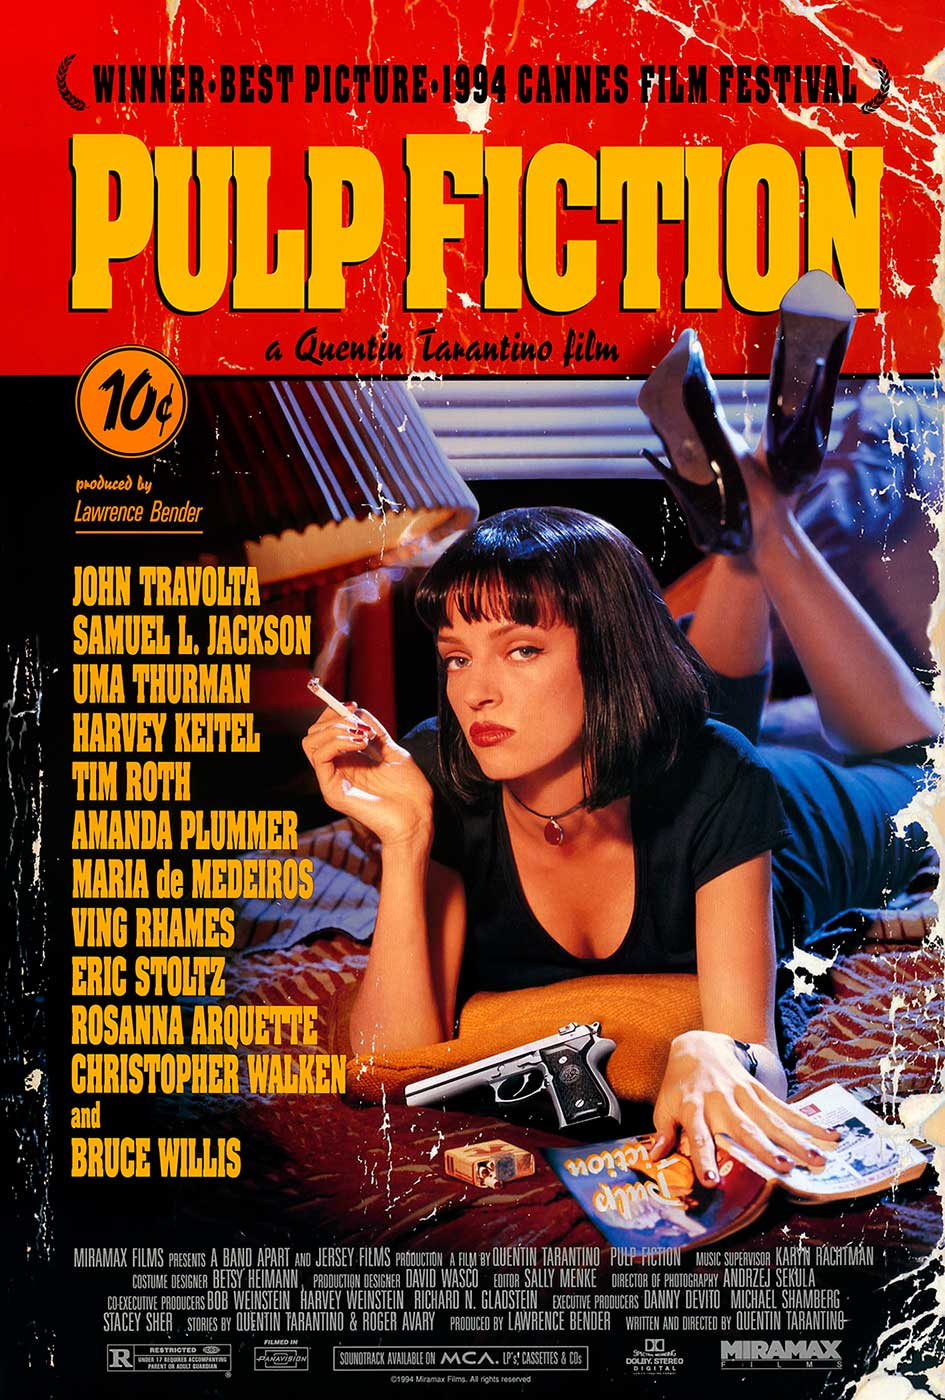 The theatrical poster art for PULP FICTION reflected the hardboiled crime influence in the anthology film, which was also inspired by multi-story Italian film Black Sabbath. Contrary to the artwork, ticket prices did not cost 10 cents.